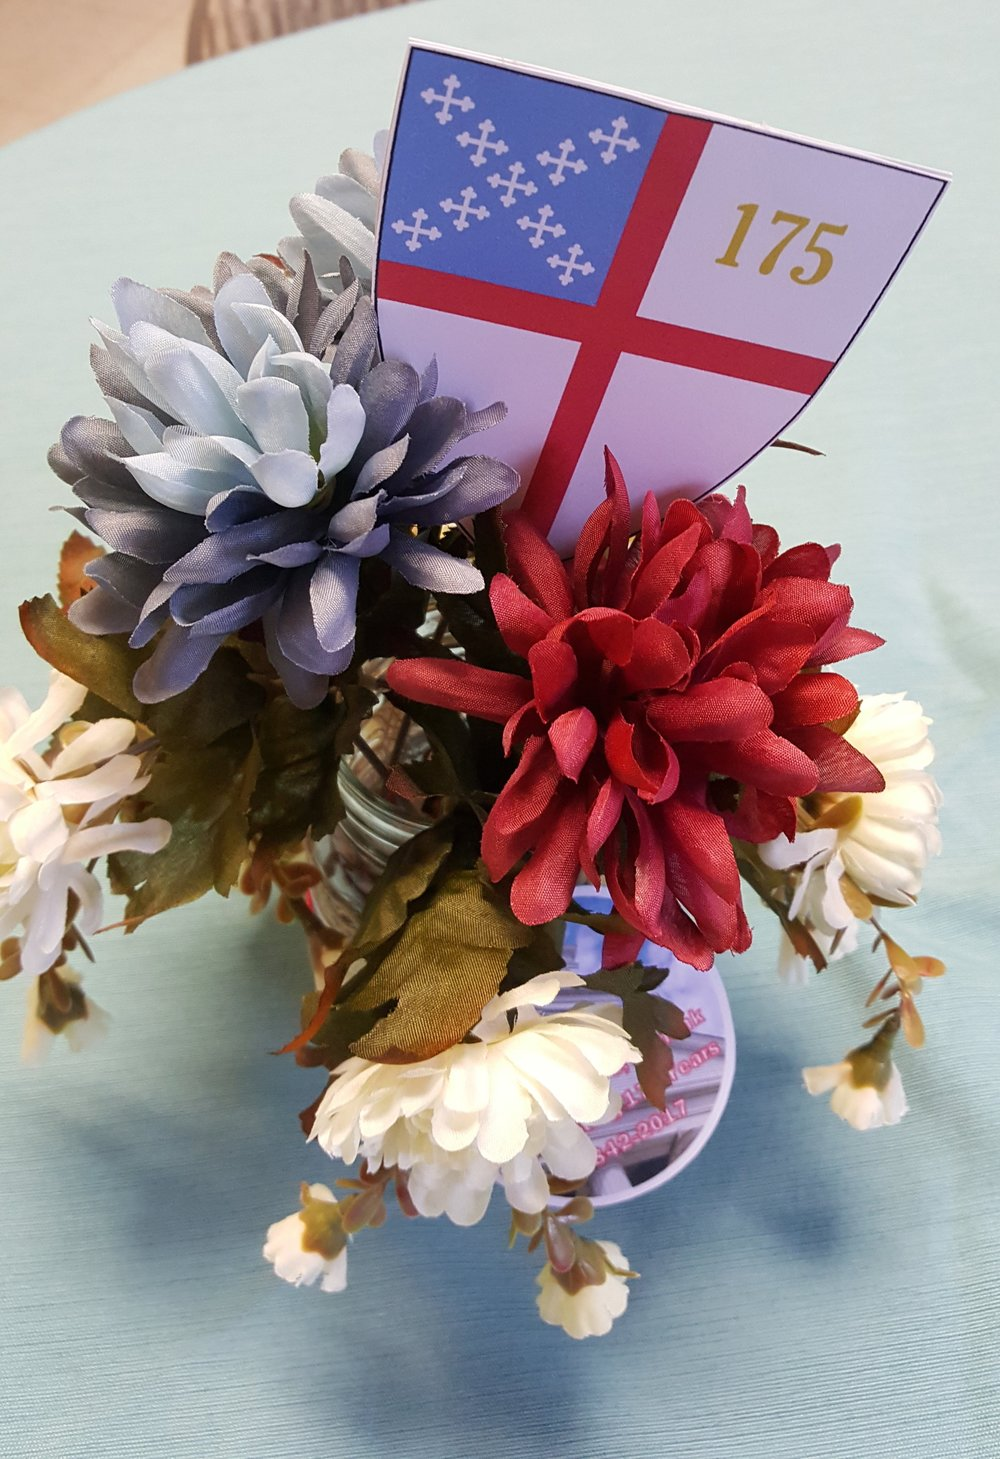 175th table flowers.jpg